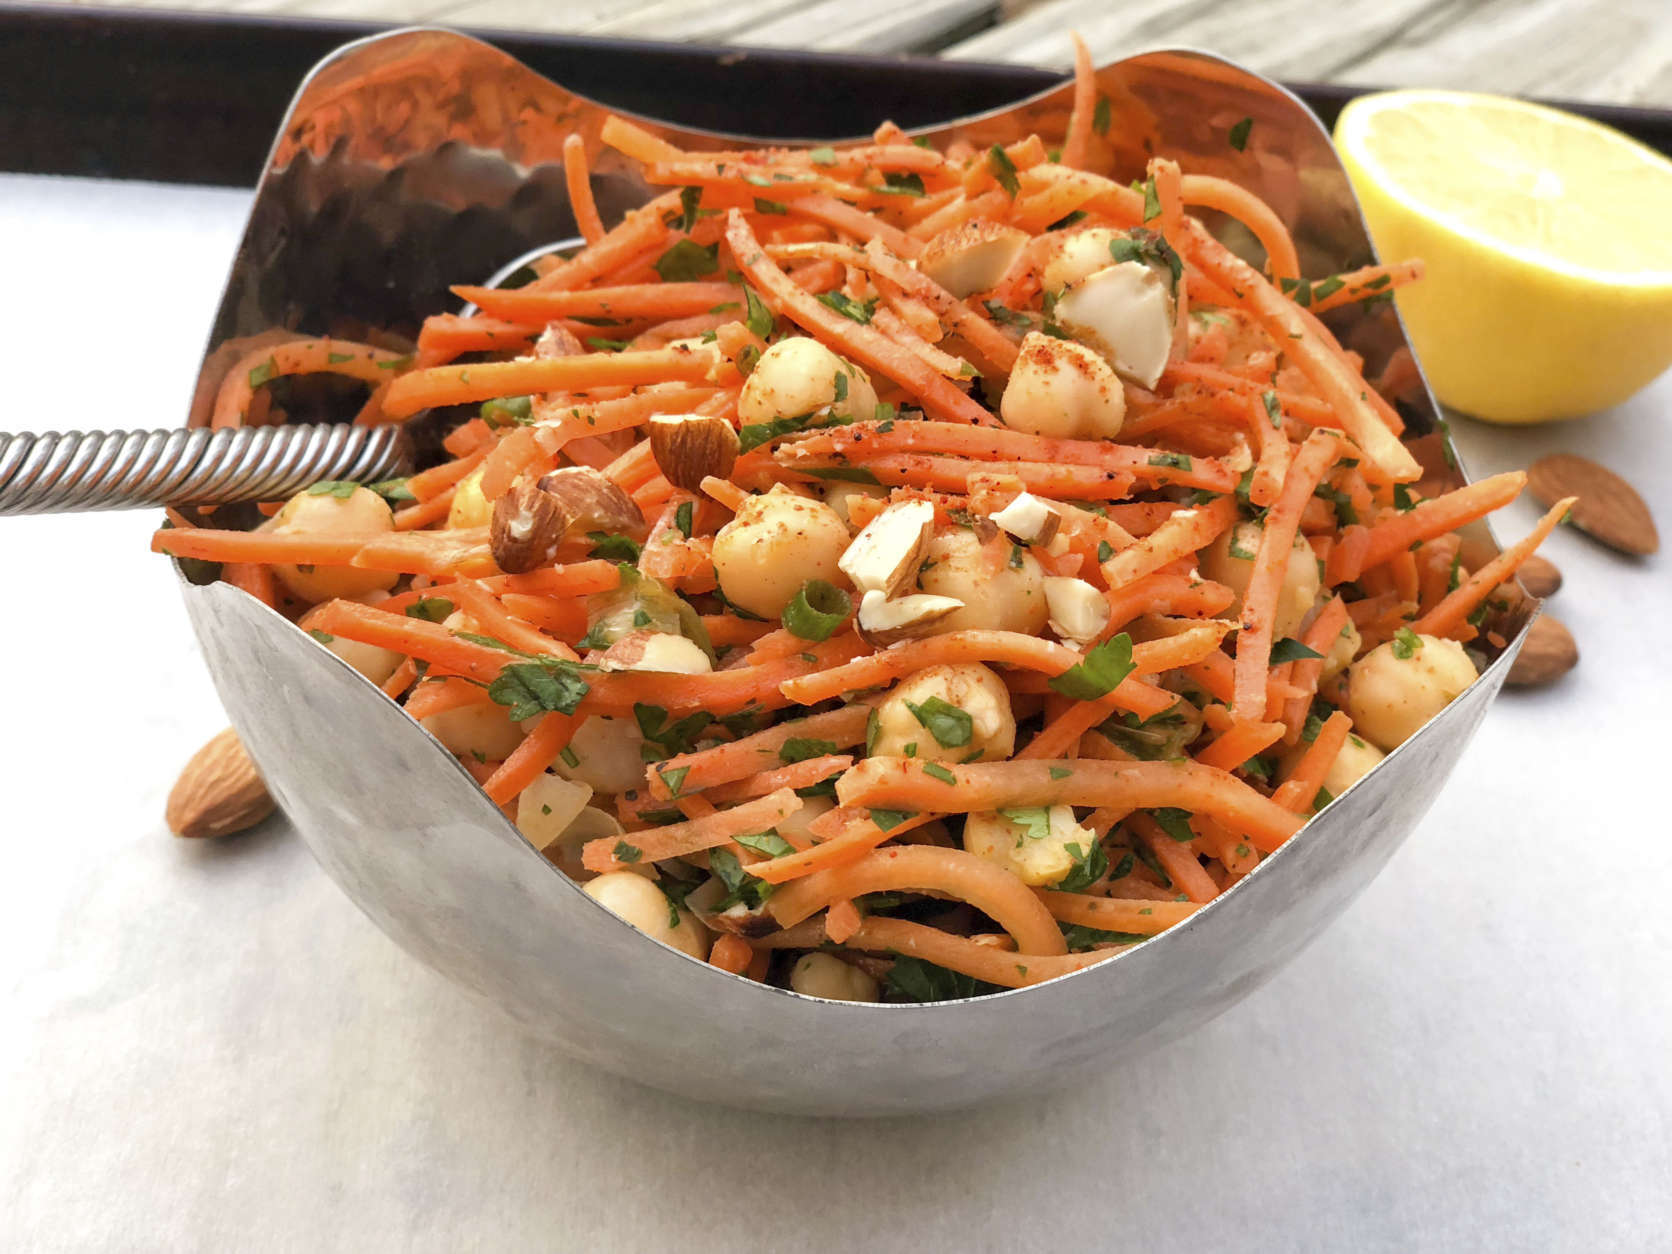 This Dec. 11, 2017 photo shows a North African carrot and chickpea salad in Bethesda, Md. This dish is from a recipe by Melissa d'Arabian. (Melissa d'Arabian via AP)